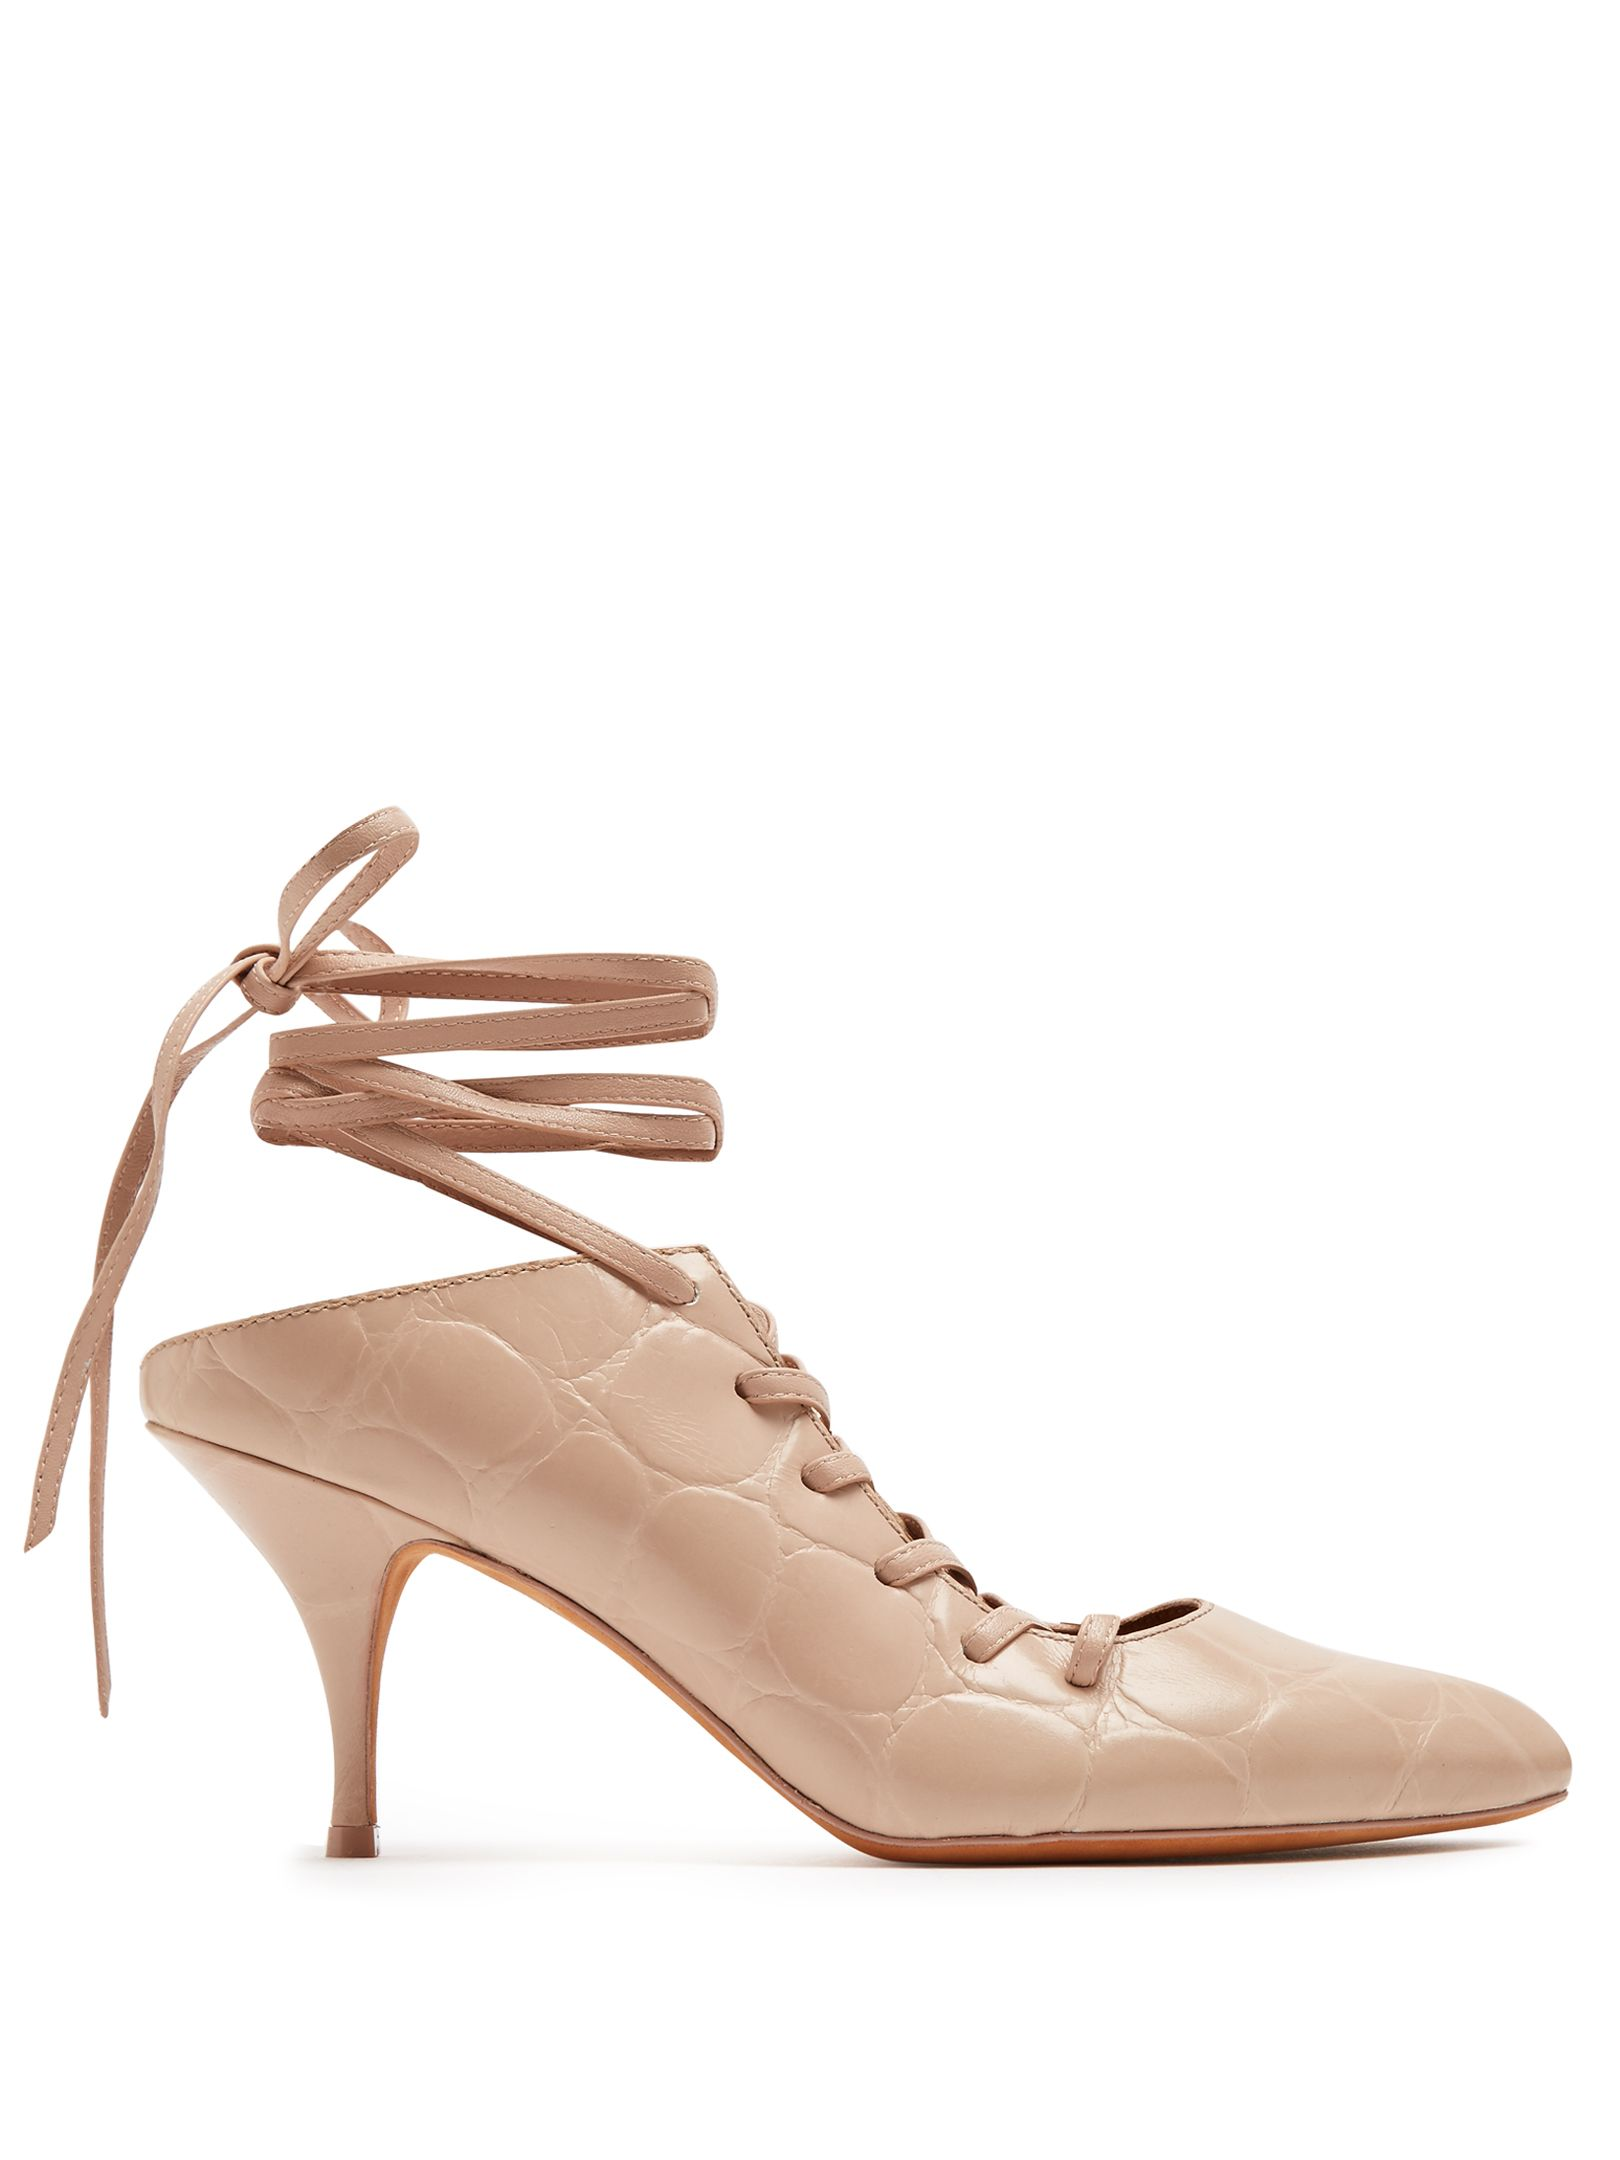 Givenchy Lace-up crocodile-effect leather pumps at MATCHESFASHION.COM